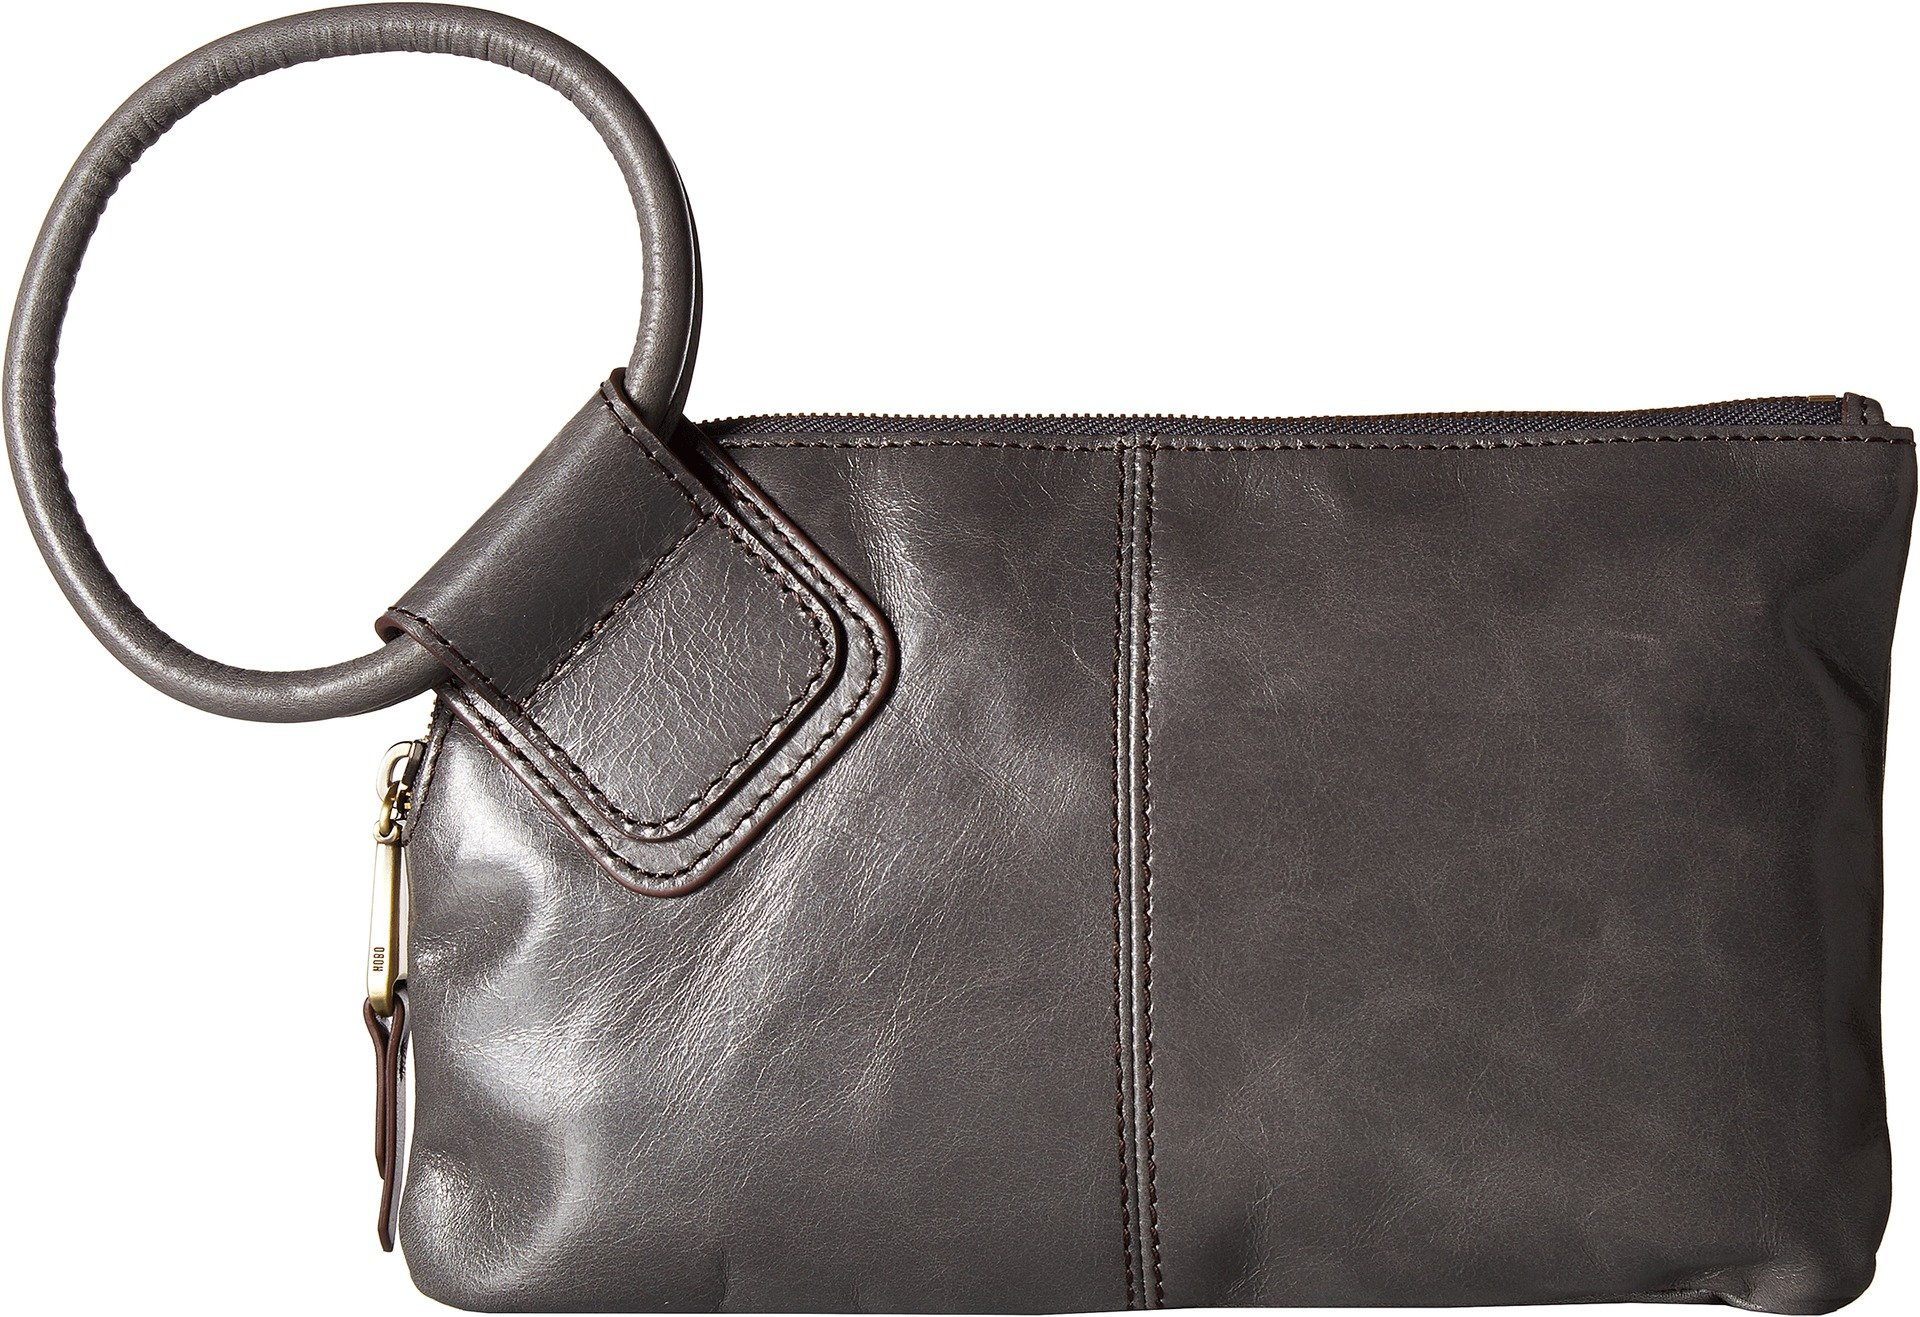 Hobo Women's Leather Sable Wristlet Clutch Wallet (Graphite)